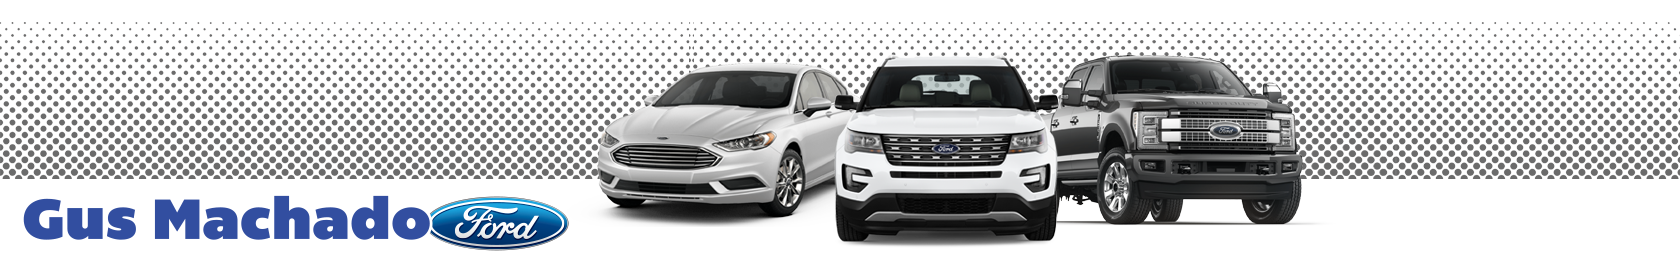 Gus Machado Ford South Florida New Used Ford Dealer Serving